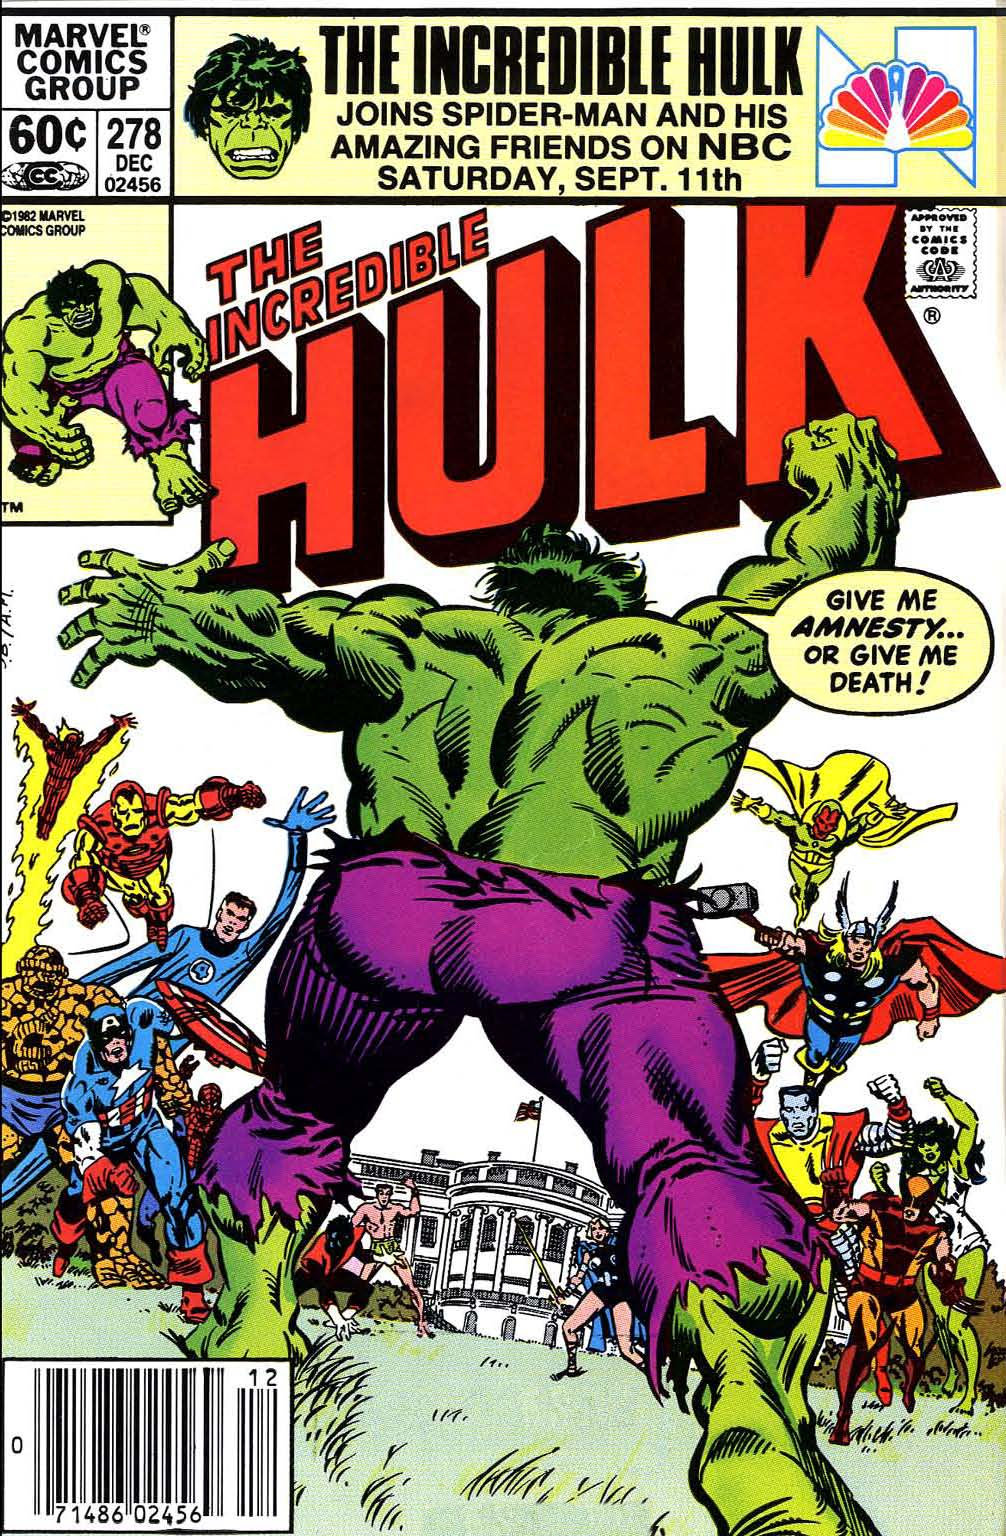 Incredible Hulk (1968) #278, cover penciled by Sal Buscema & inked by Al Milgrom.